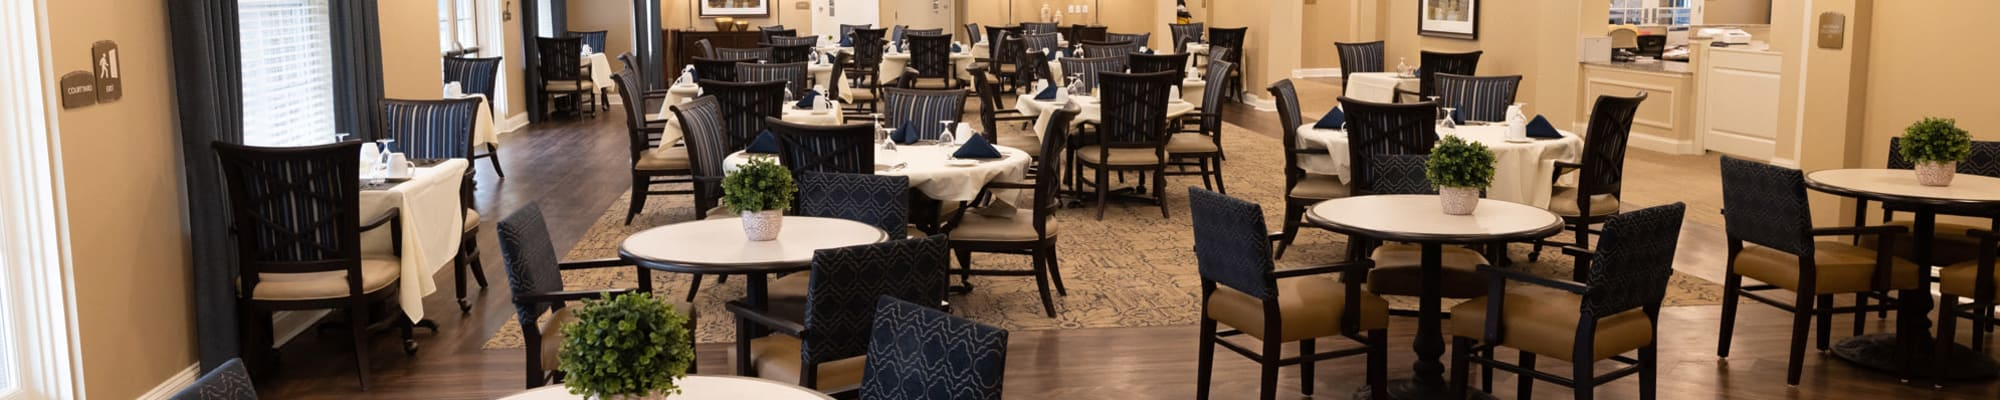 Dining at Harmony at State College in State College, Pennsylvania